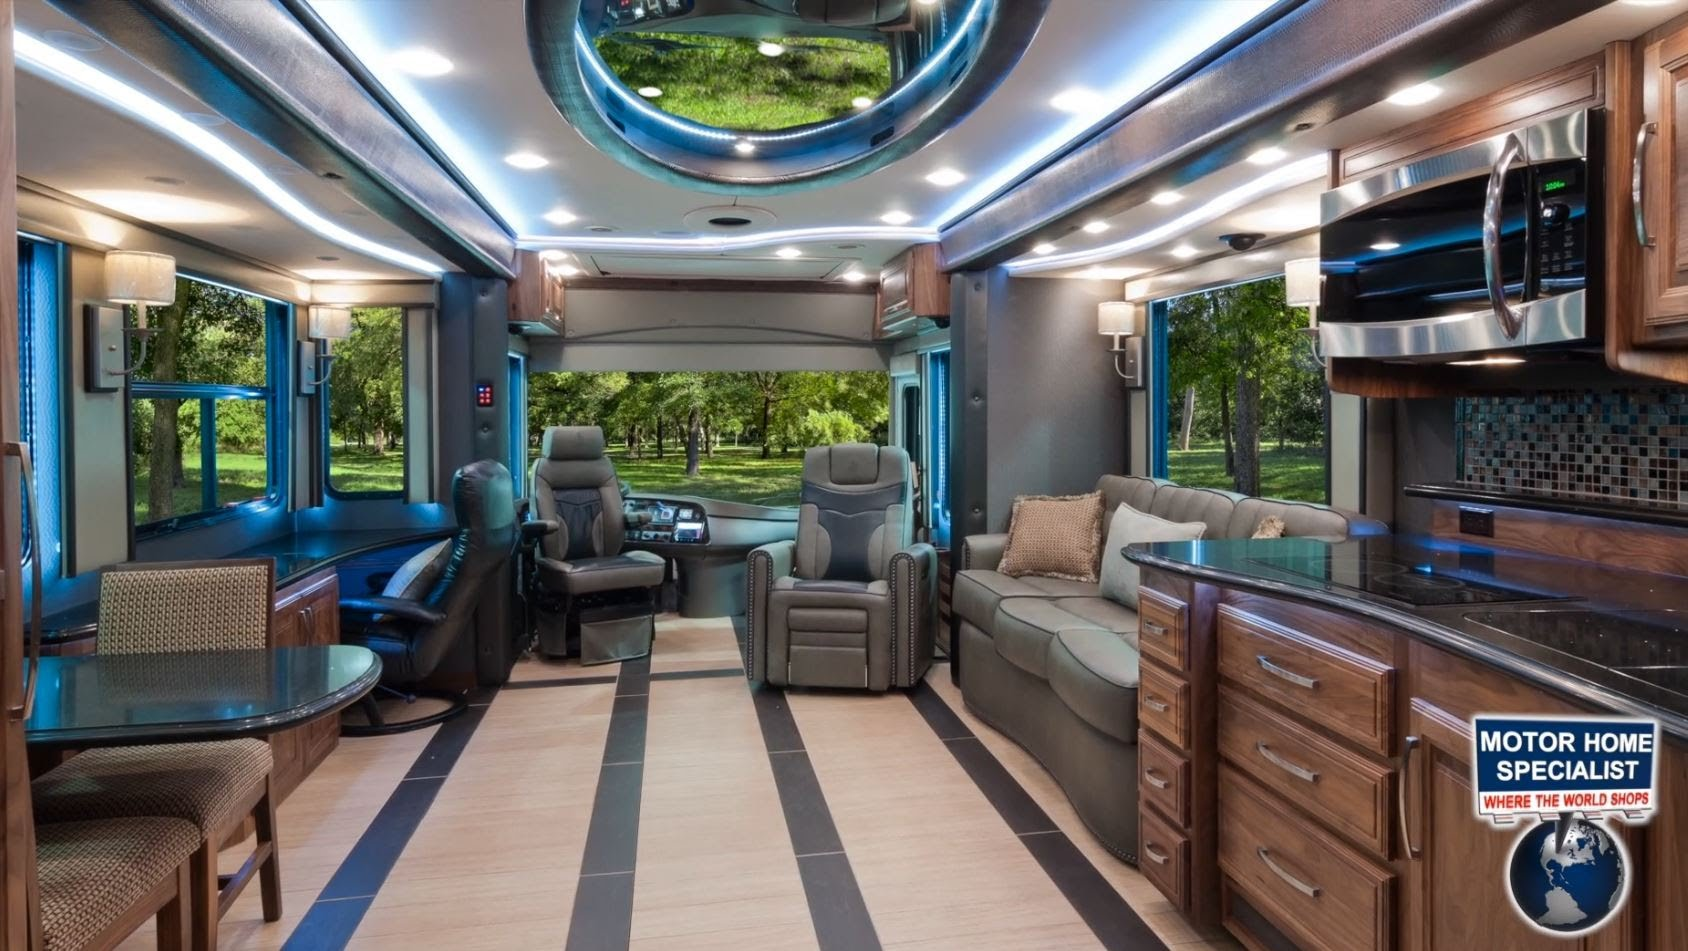 RV vacation options go luxe: Travel Weekly